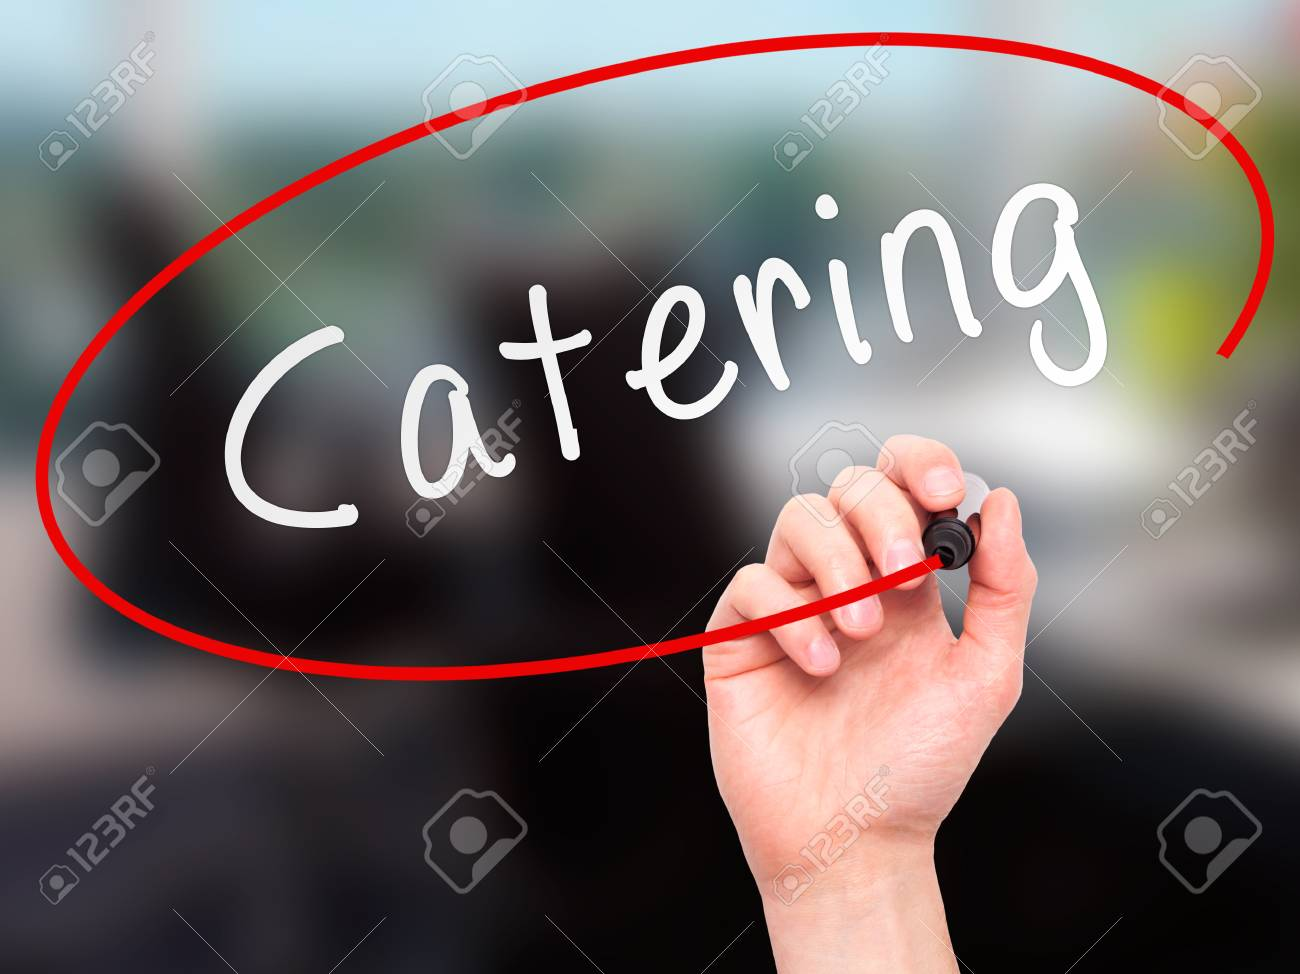 Image result for catering in writing